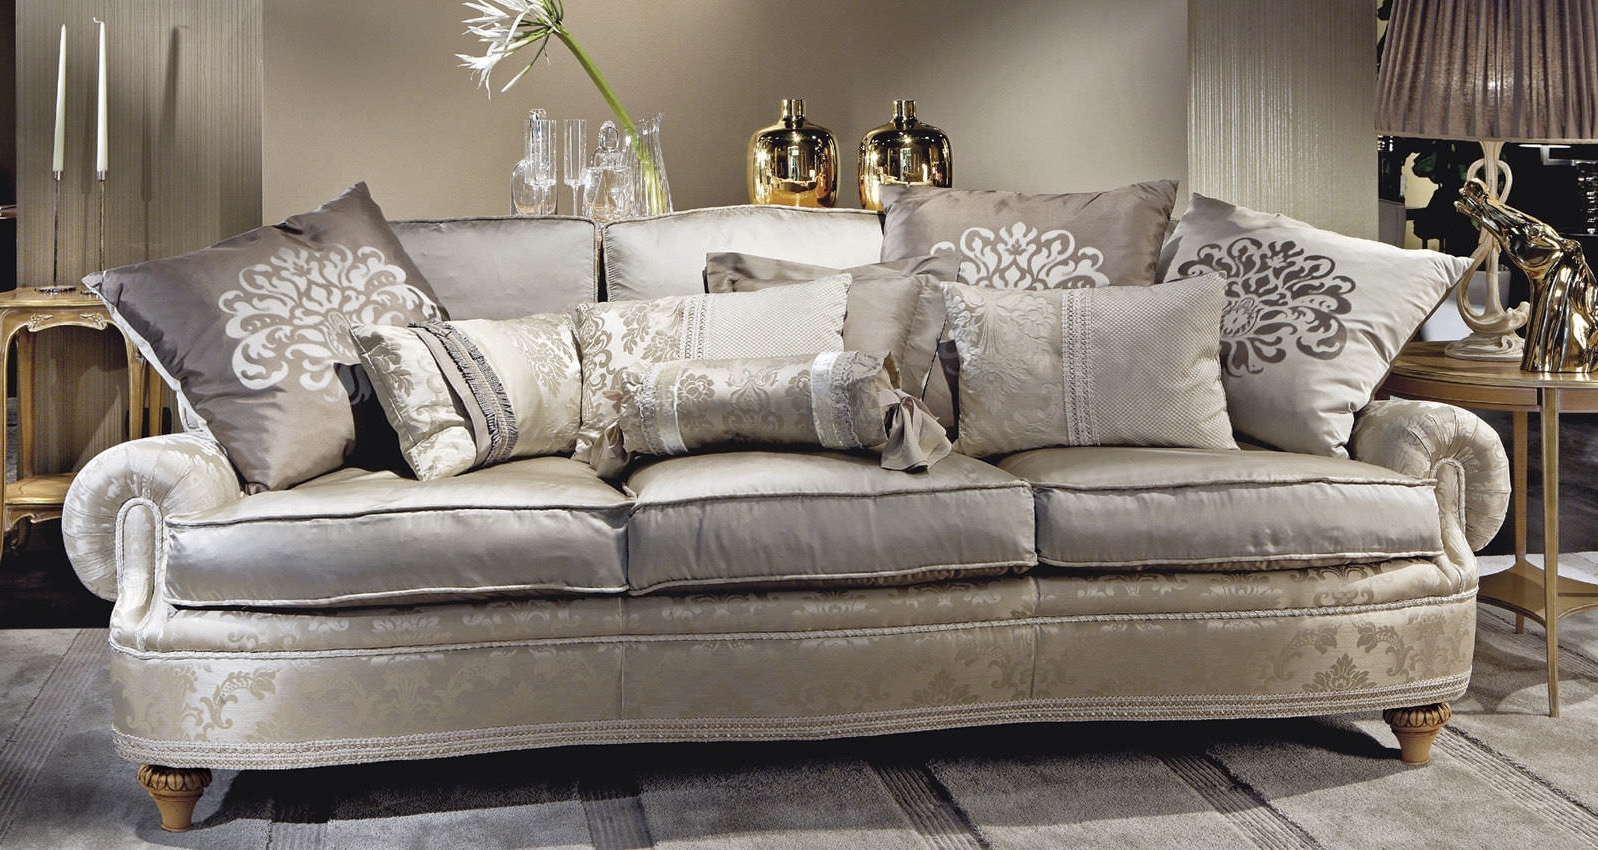 Traditional Sofas Intended For 2017 Epic Traditional Sofas 60 For Modern Sofa Inspiration With (View 5 of 15)